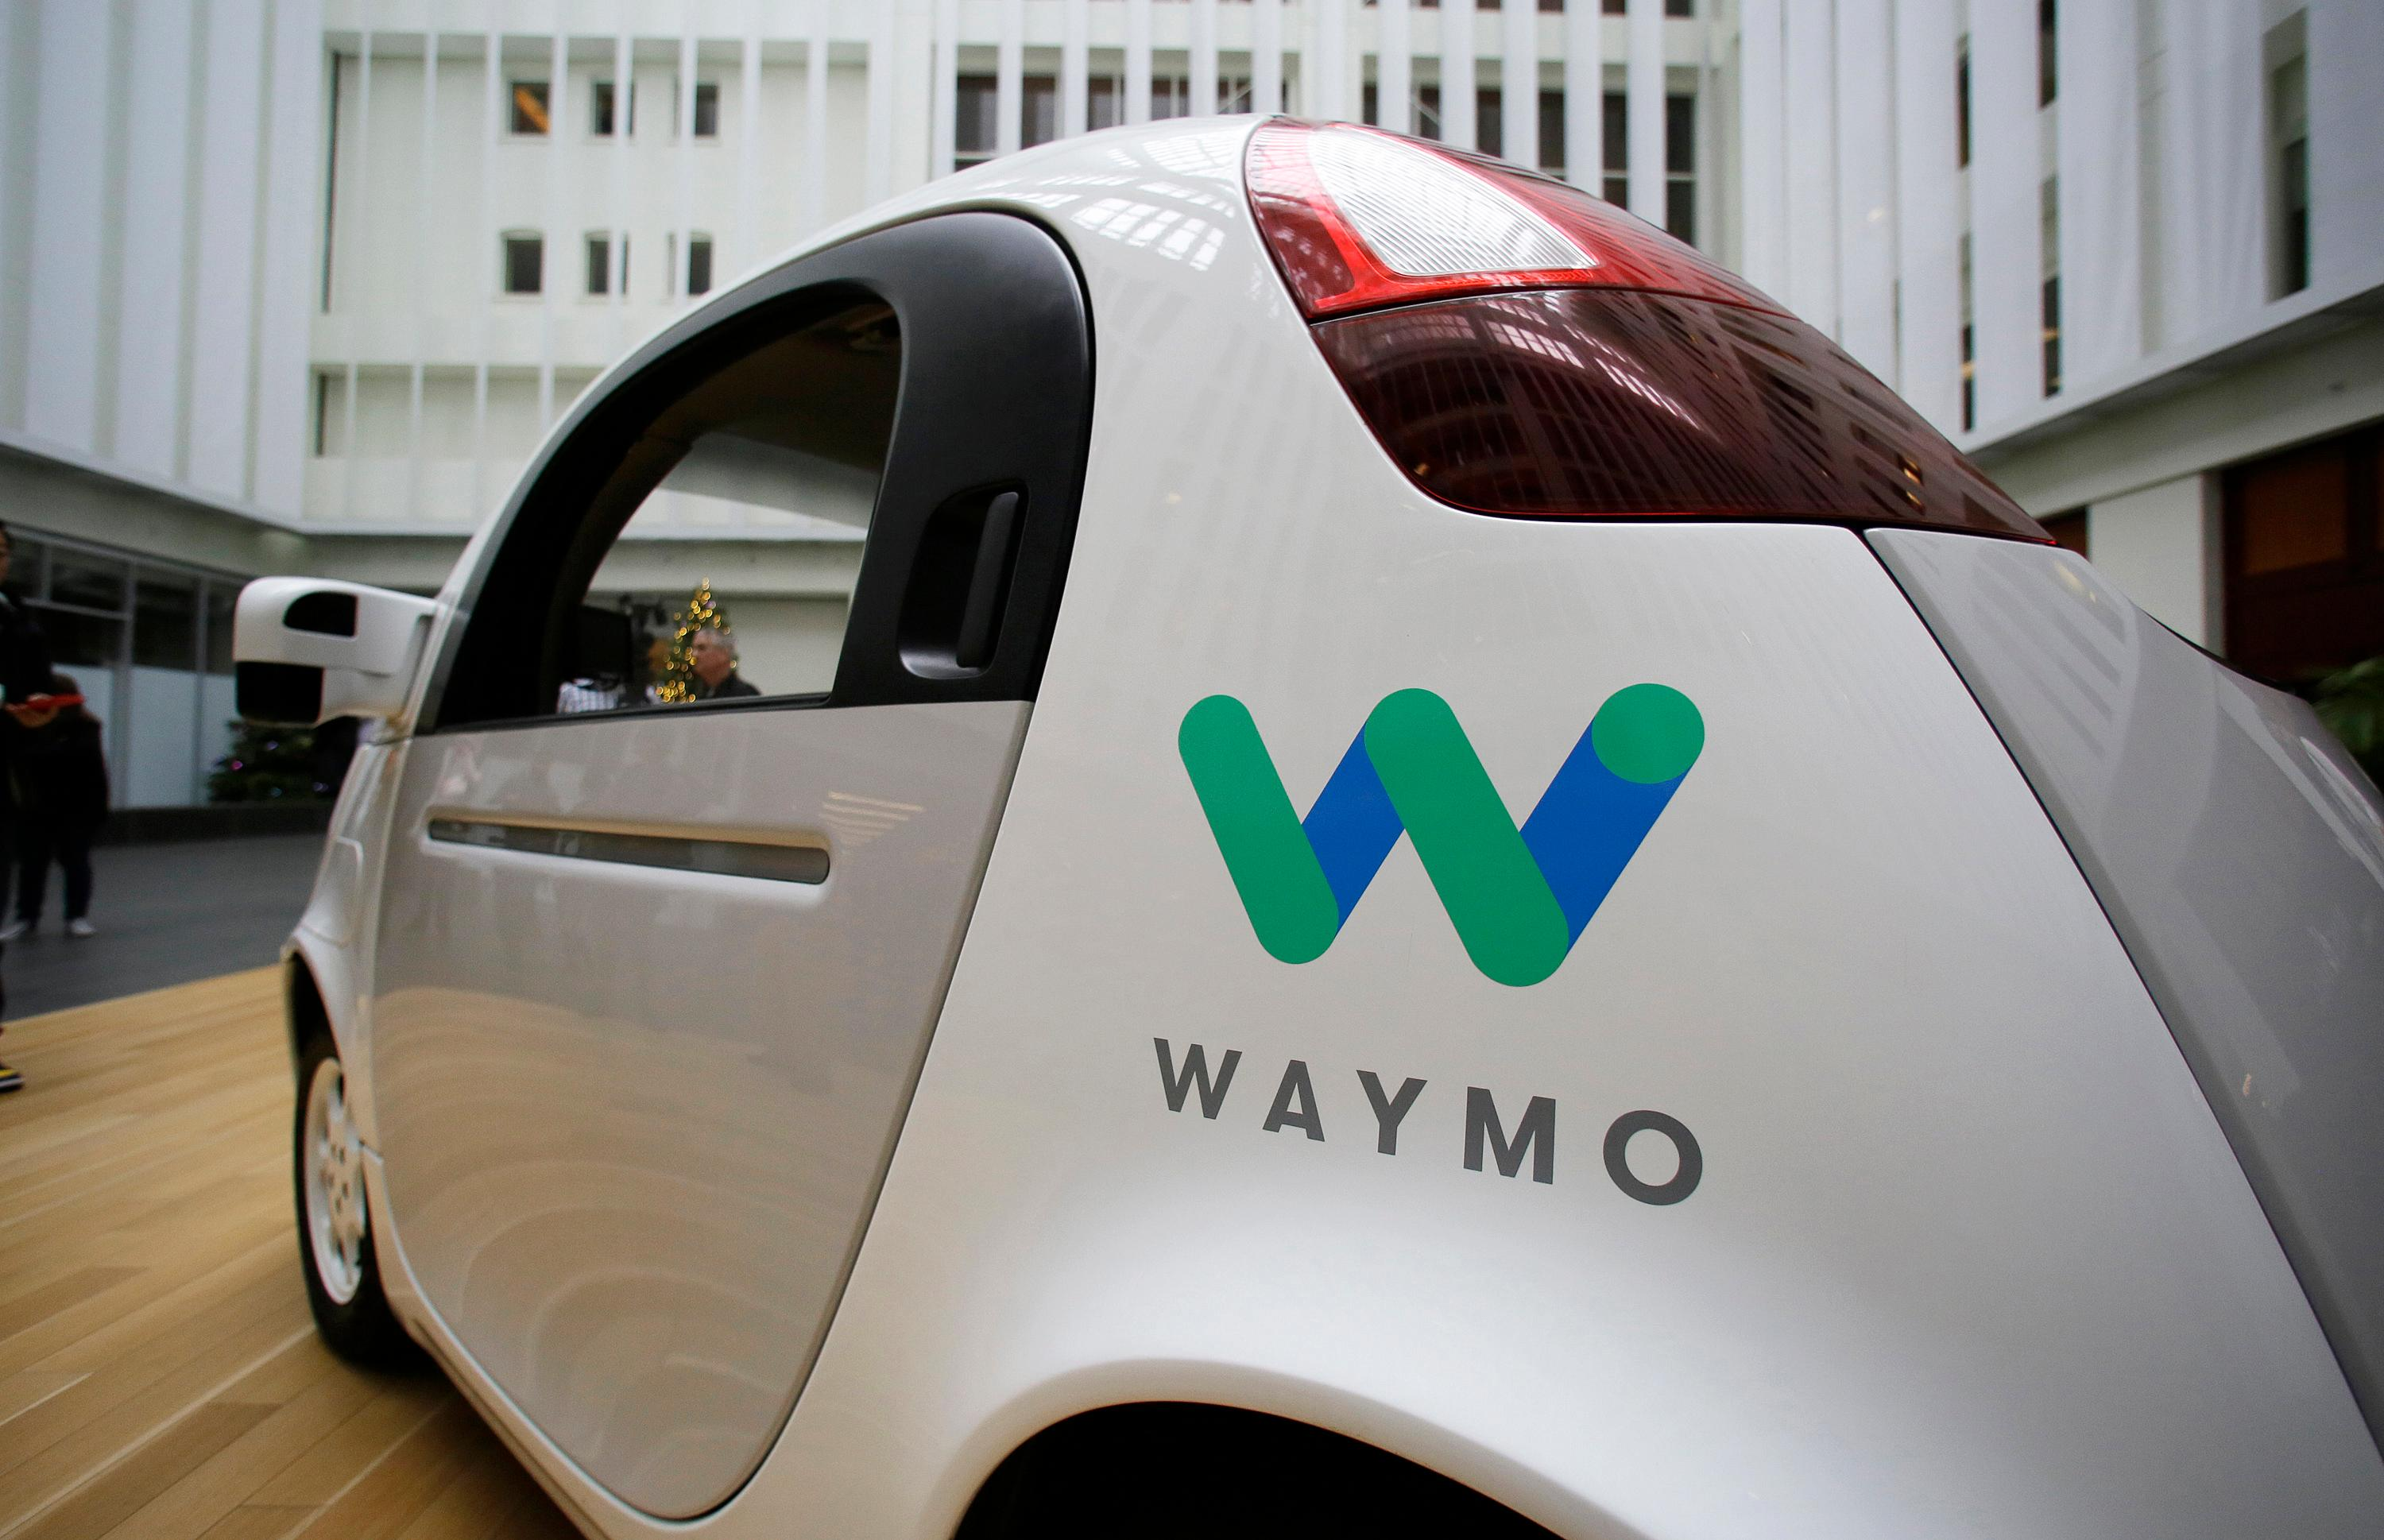 FILE - In this Tuesday, Dec. 13, 2016, file photo, the Waymo driverless car is displayed during a Google event in San Francisco. A federal criminal investigation into alleged espionage at Uber has indefinitely delayed a trial over whether the beleaguered ride-hailing service stole self-driving car technology from Waymo, a spinoff from Google. (AP Photo/Eric Risberg, File)